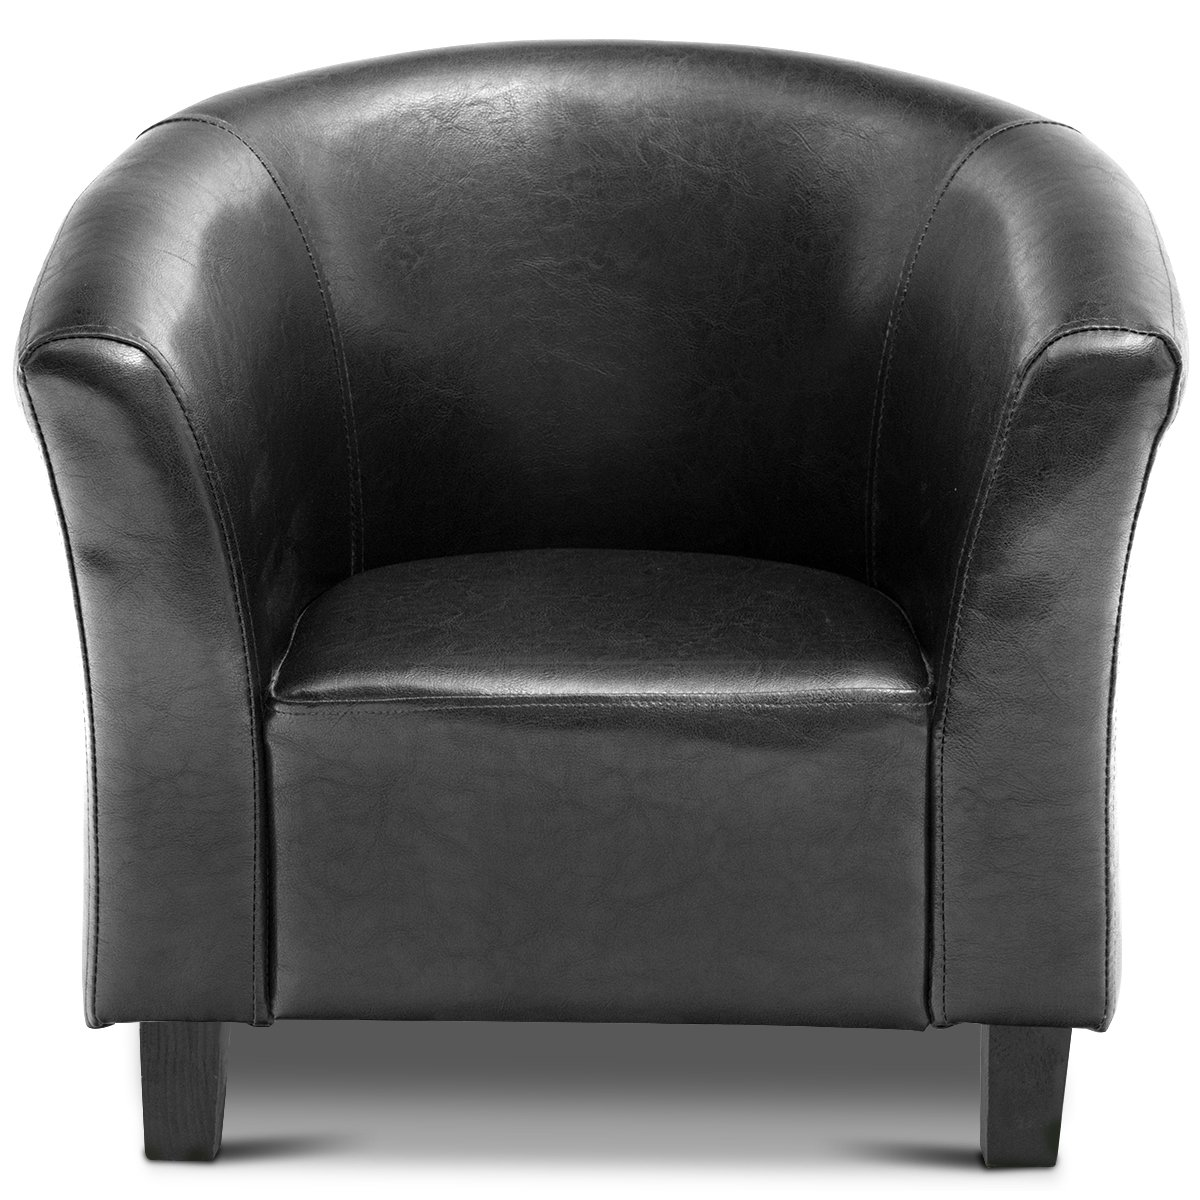 Costzon Kids Sofa Tub Chair Couch Children Living Room Toddler Furniture (PU Leather, Black)